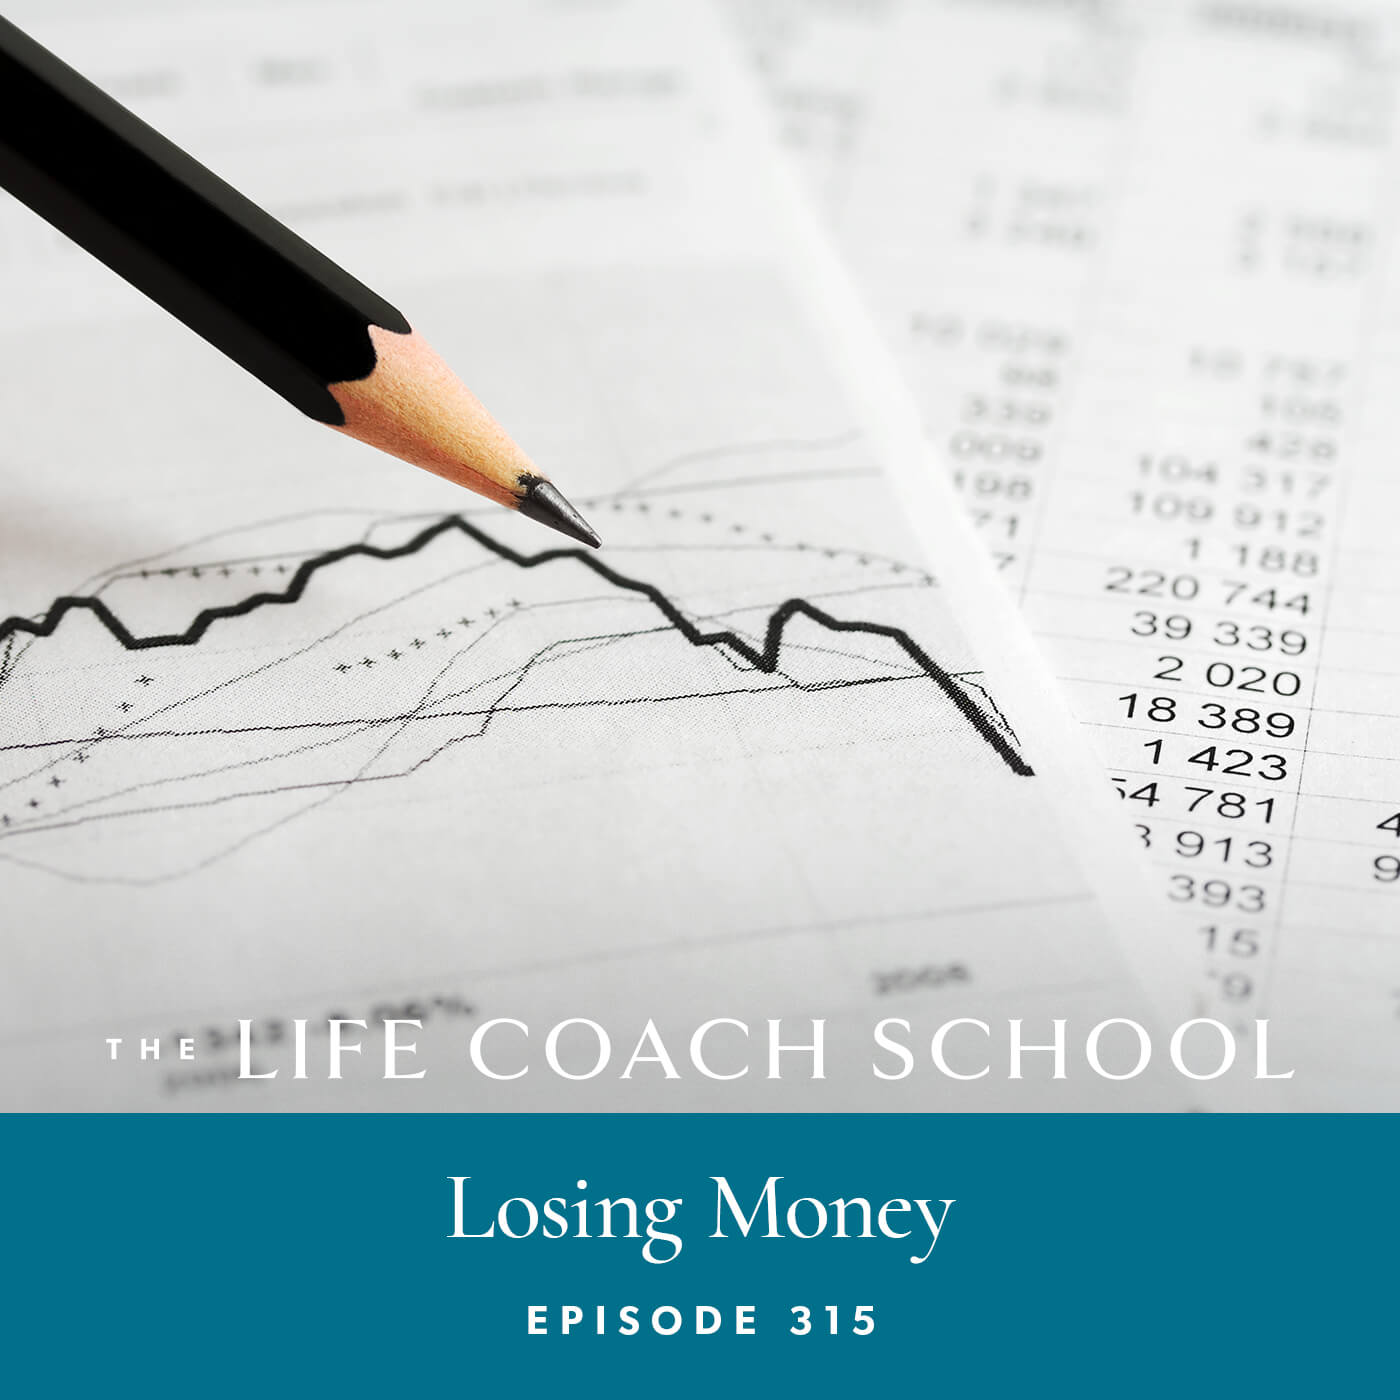 The Life Coach School Podcast with Brooke Castillo | Episode 315 | Losing Money